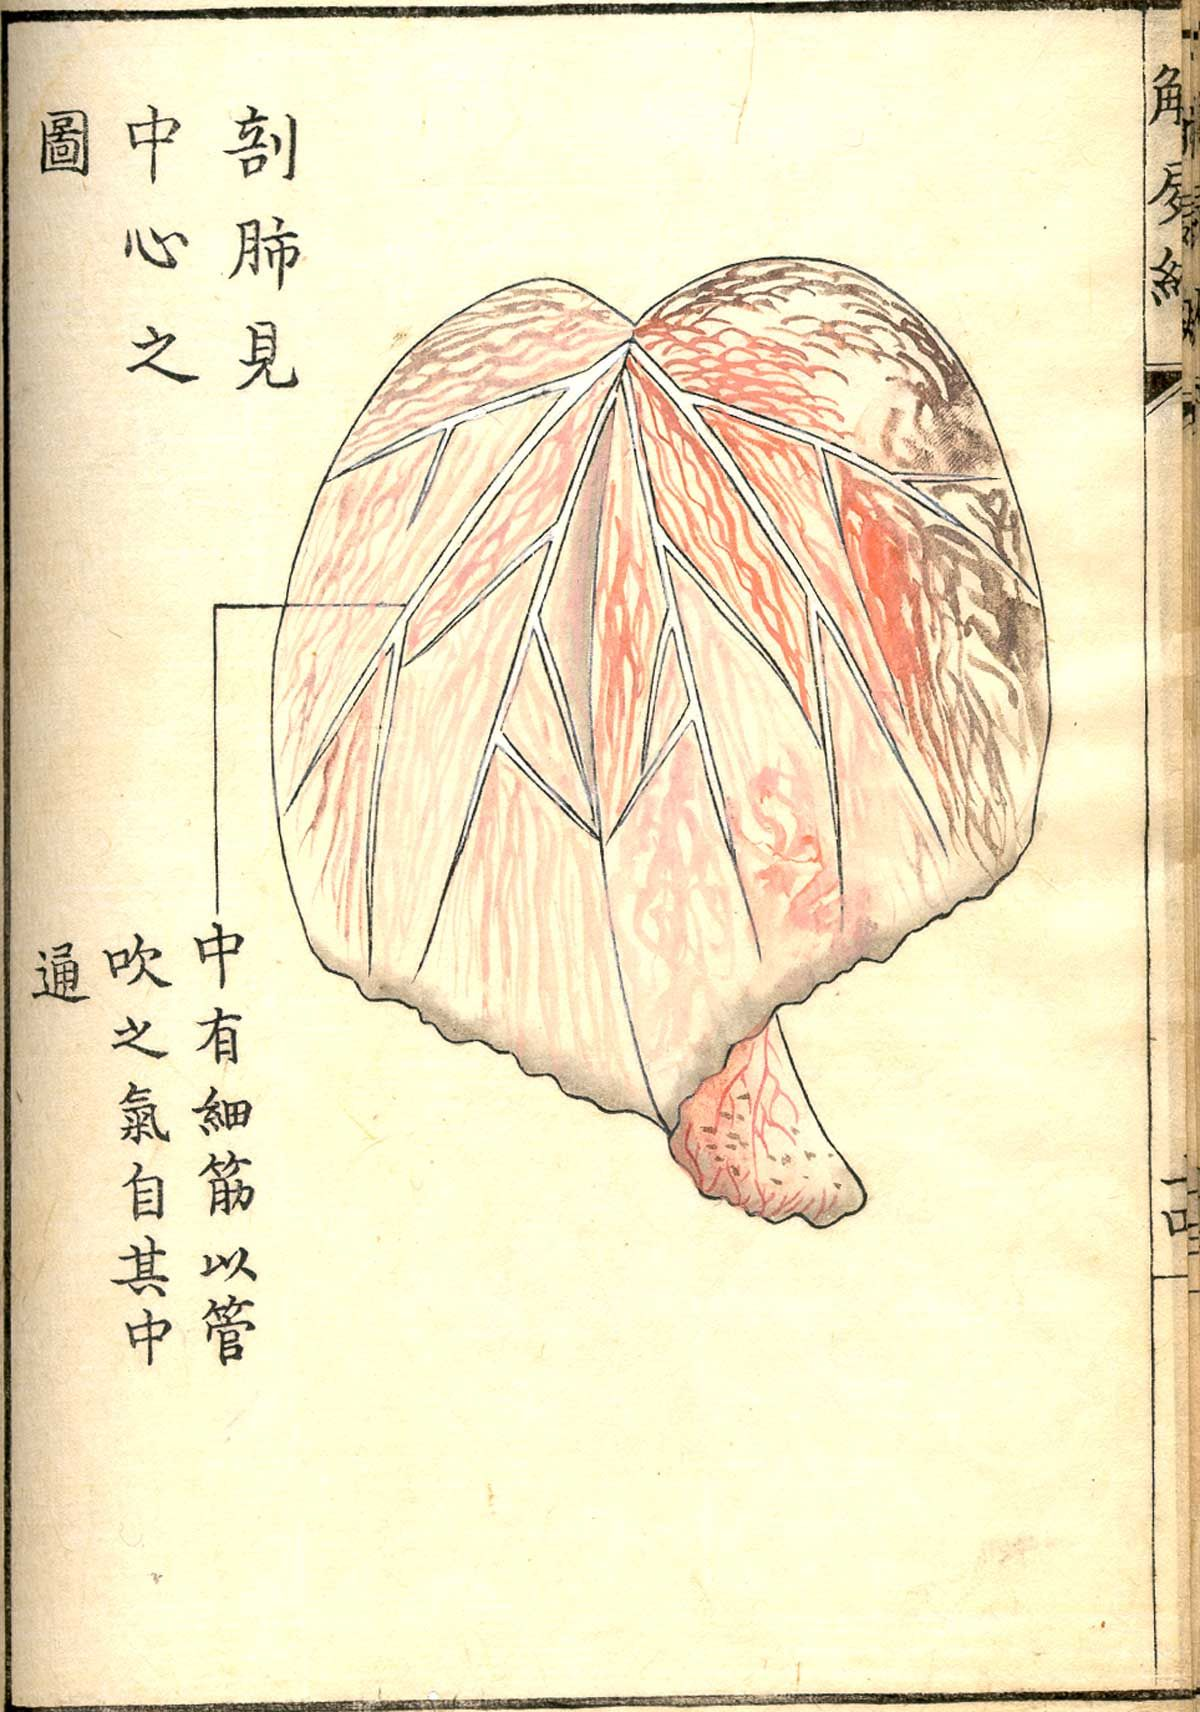 National Library of Medicine historical anatomy images | Medical ...